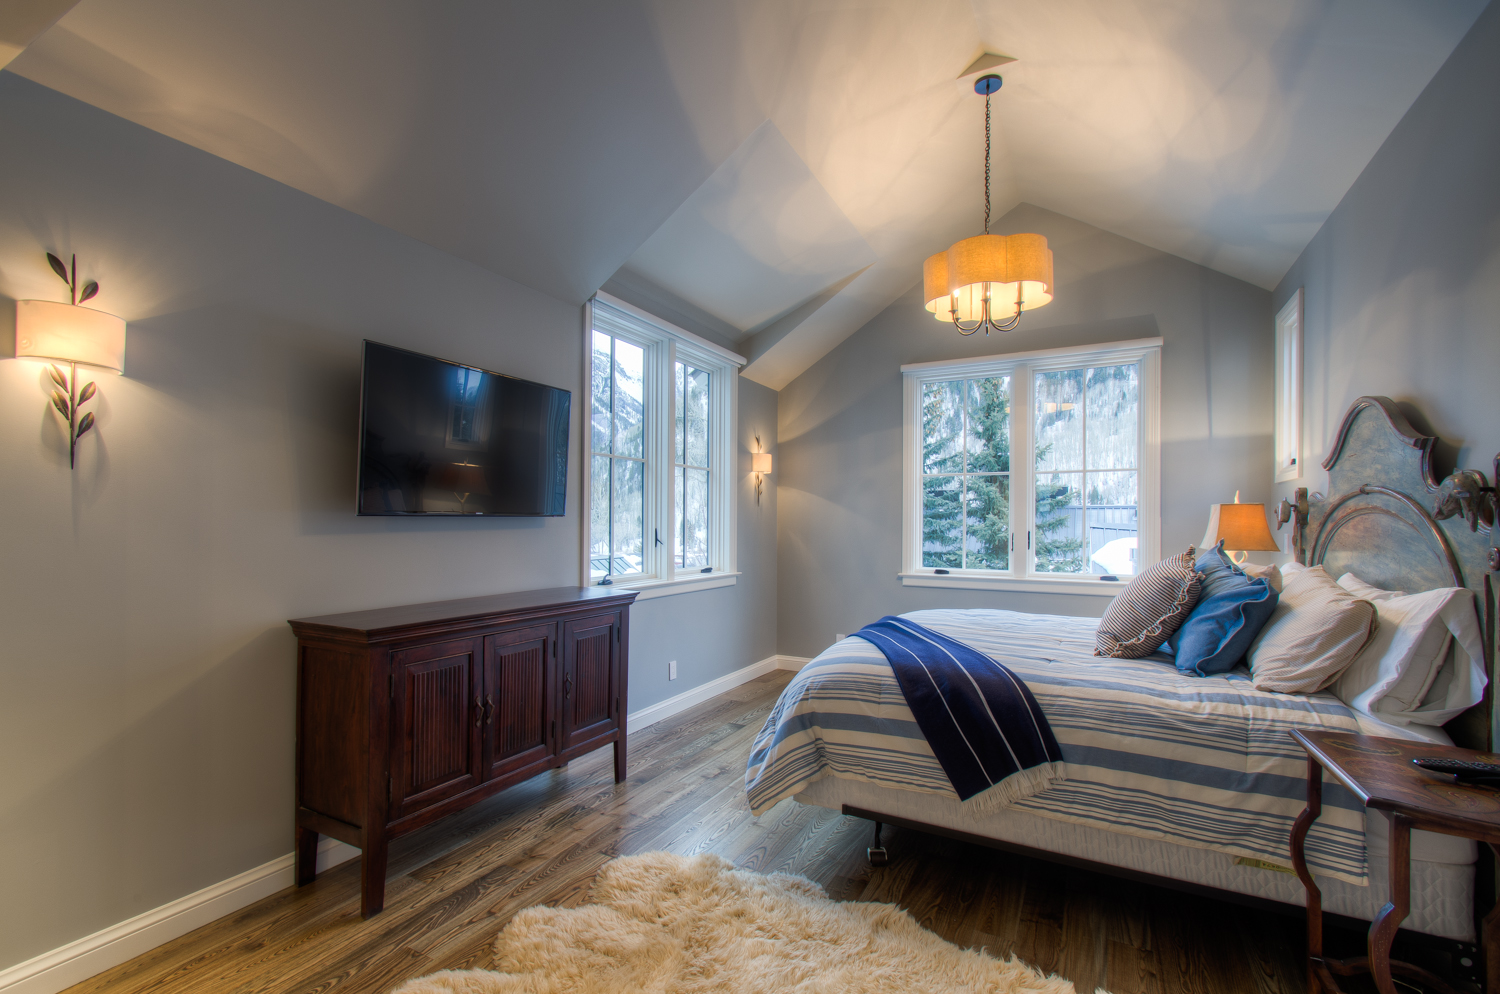 Bedroom with Flat-screen TV and Views of Outside at Miles High